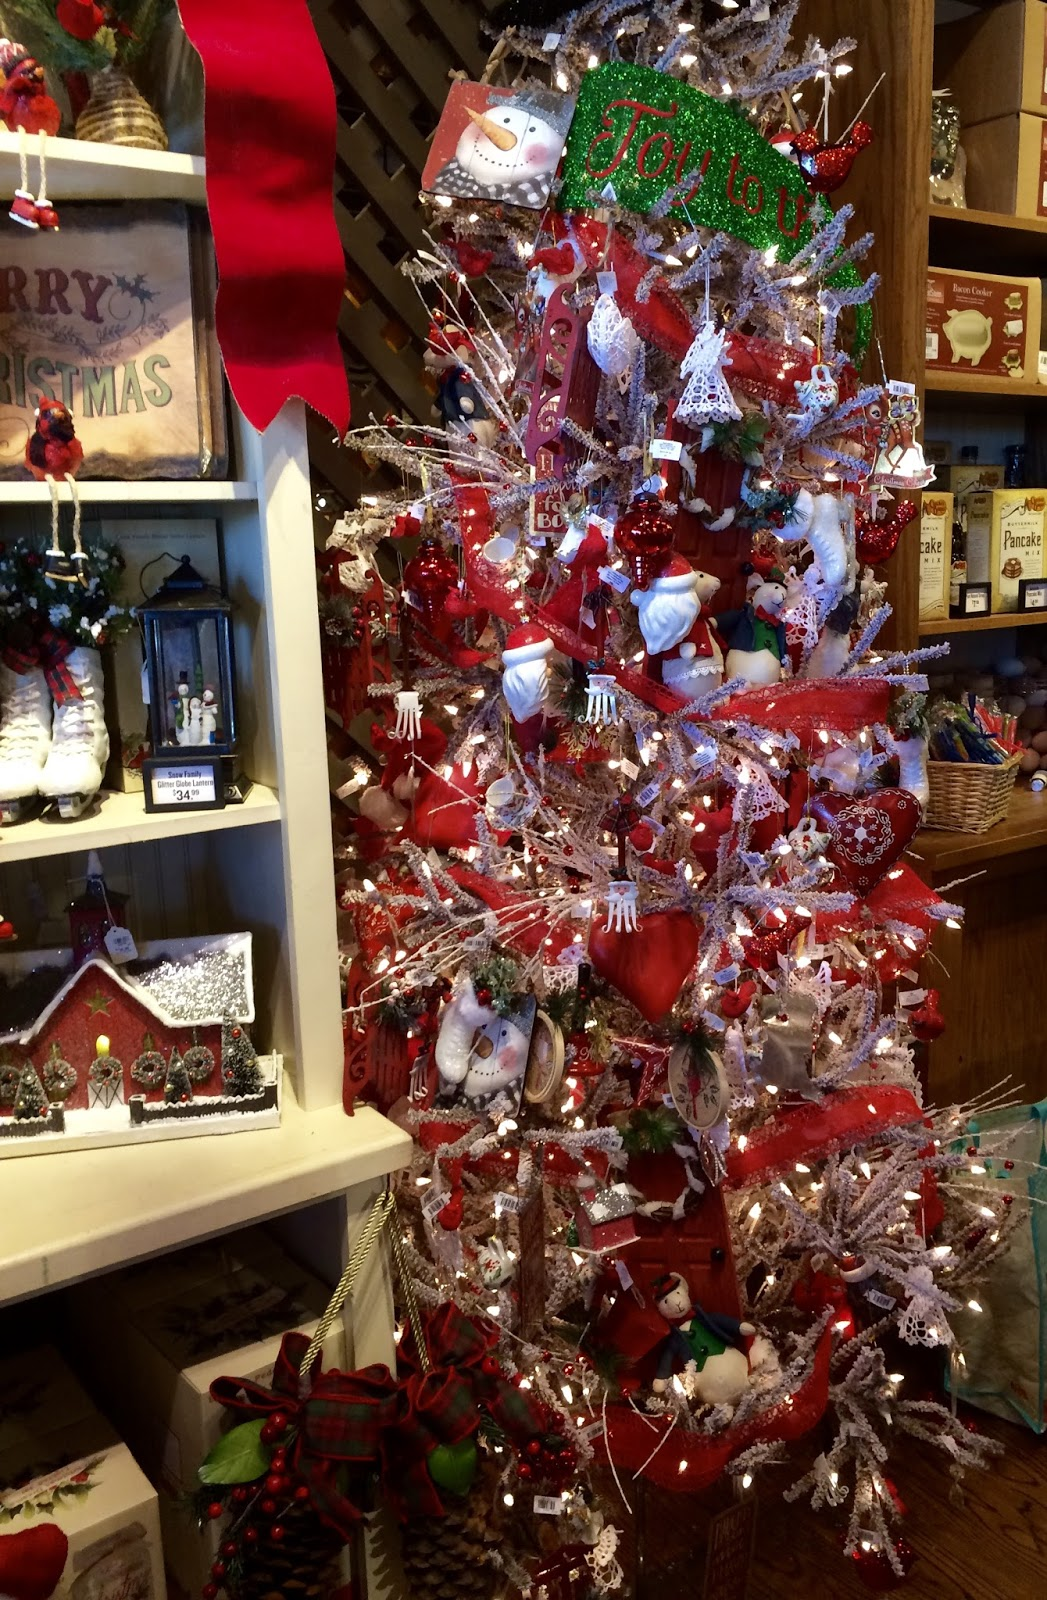 Cracker Barrel Christmas.Nanaland It S Beginning To Look A Lot Like Christmas At